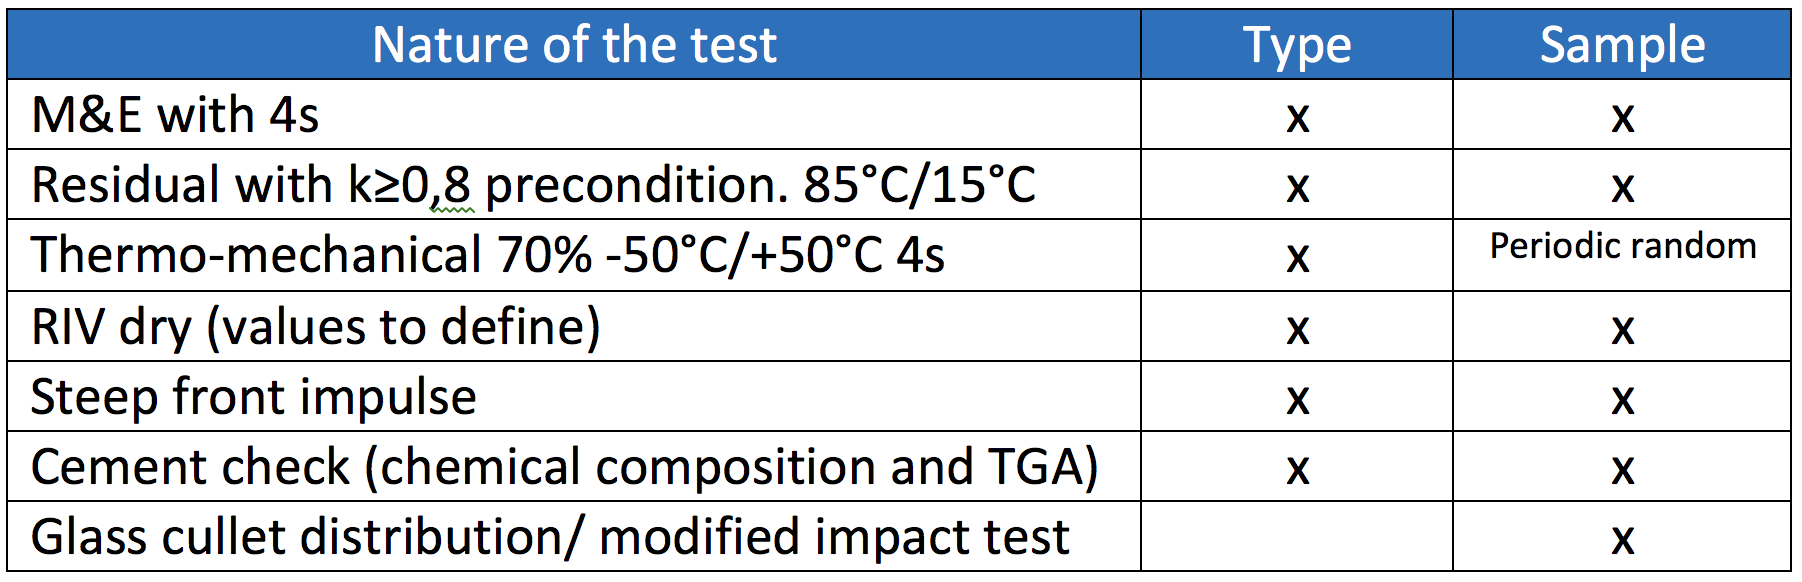 insulator Check Points & Quality Screening for Glass & Other Insulators Screen Shot 2017 12 08 at 18